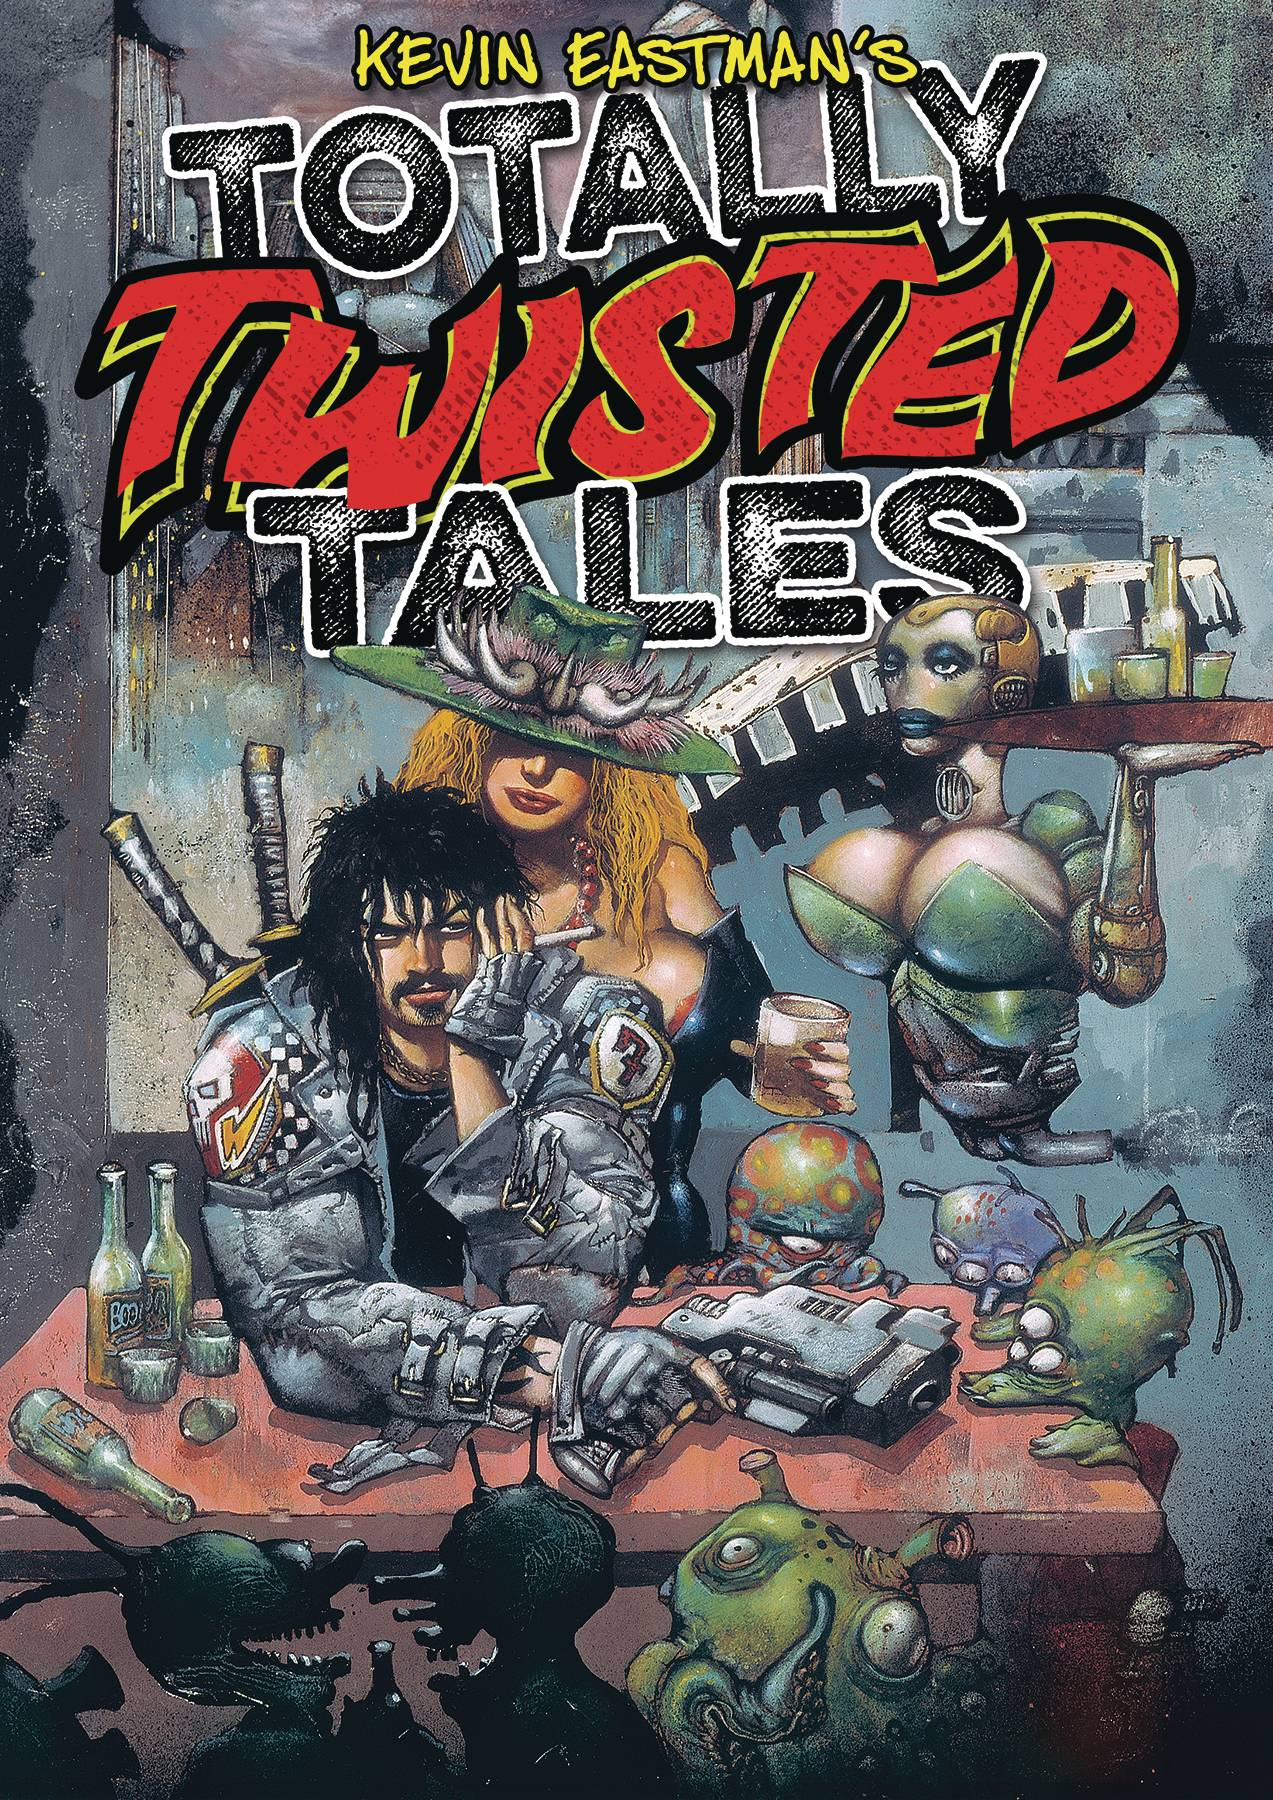 Kevin Eastman's Totally Twisted Tales - But What About Lost Angeles?